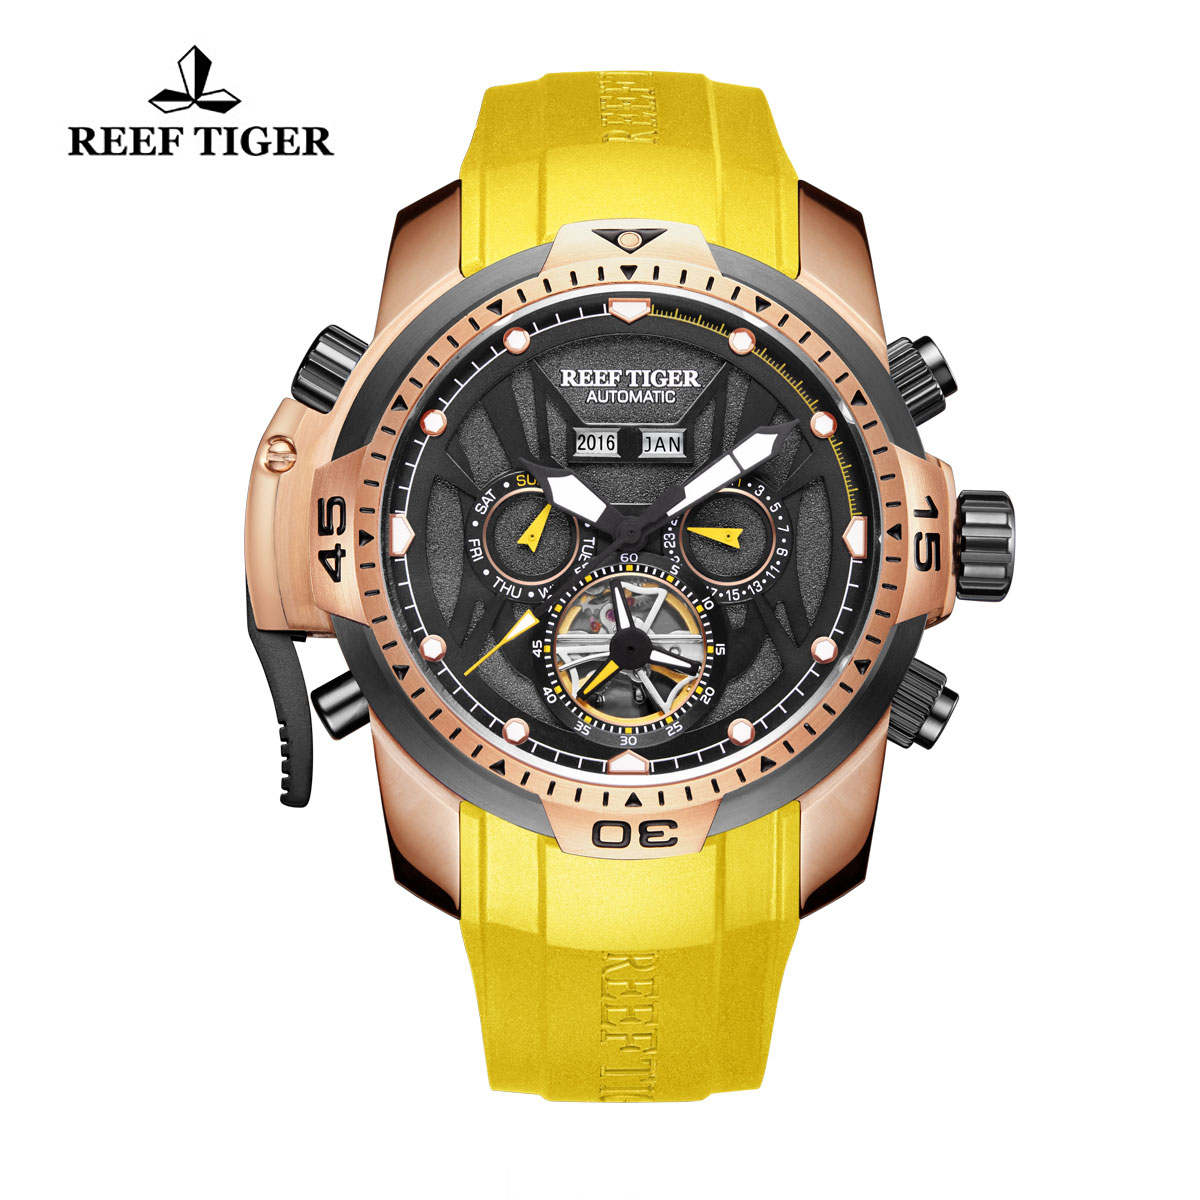 Reef Tiger Transformer Sport Watches Complicated Watch Rose Gold Case Yellow Rubber RGA3532-PBYY